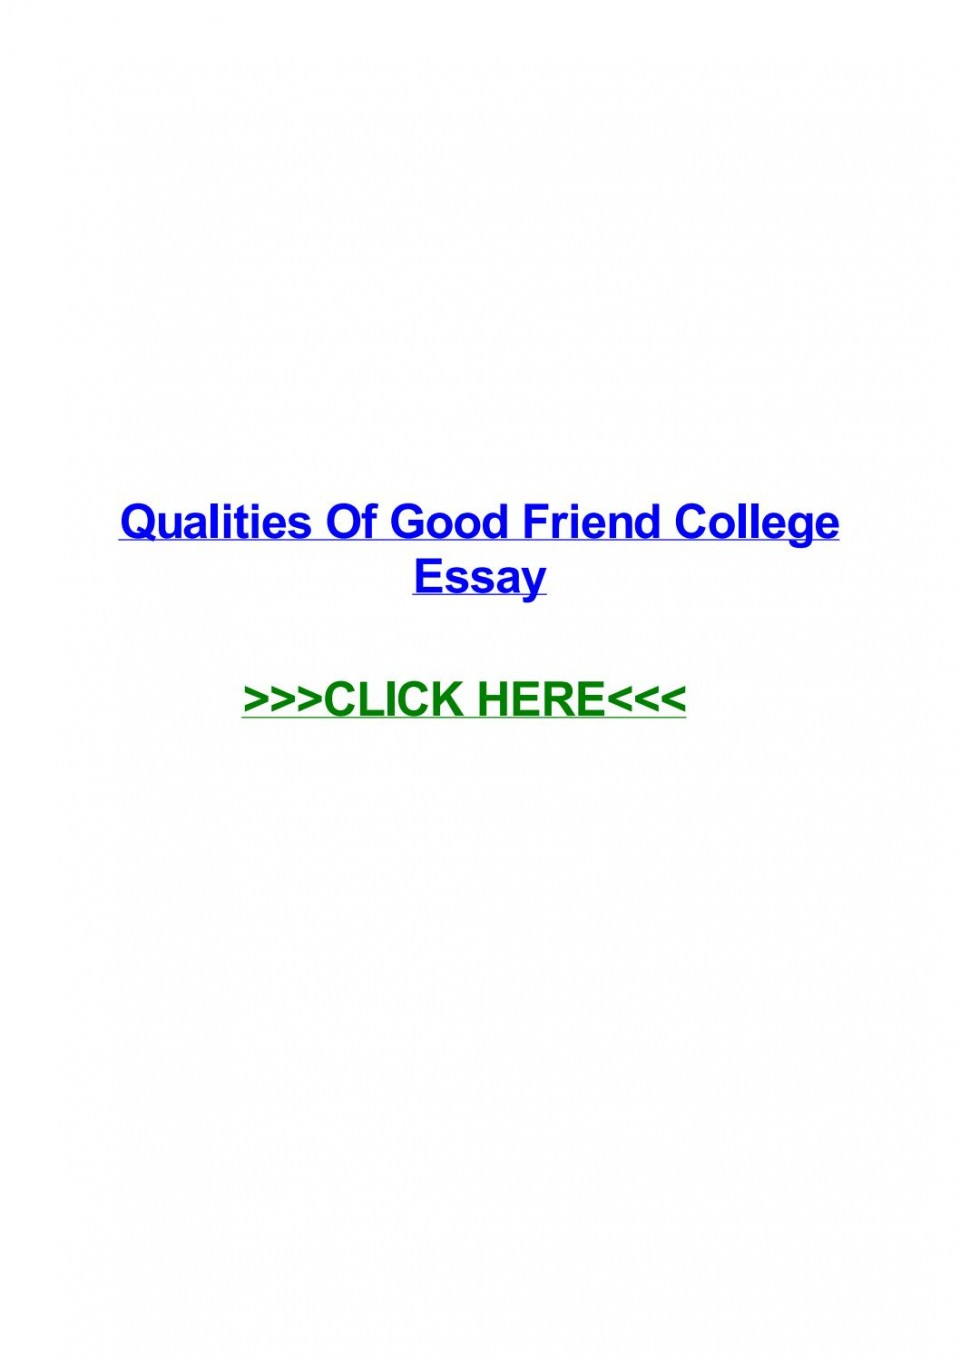 005 Essay Example Page 1 Qualities Of Good Amazing Friends A Friend In Hindi Short 960